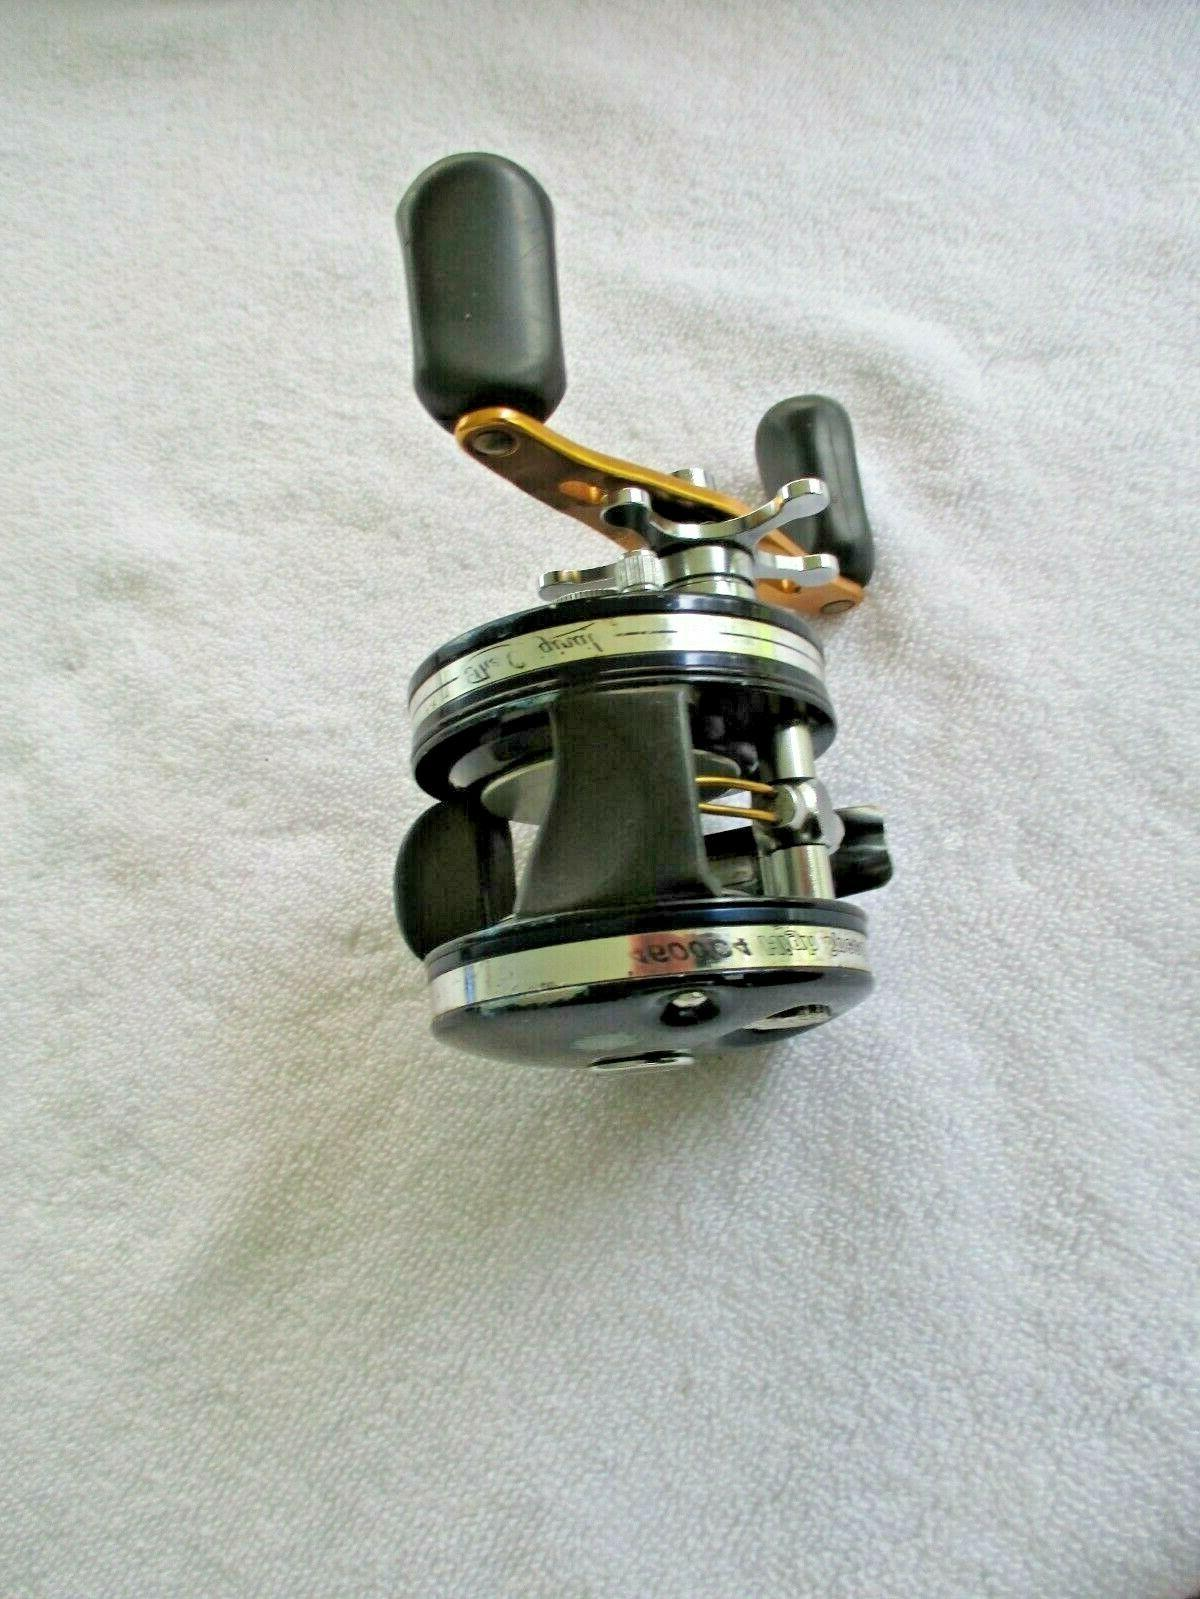 Abu Garcia C4 The and lubed